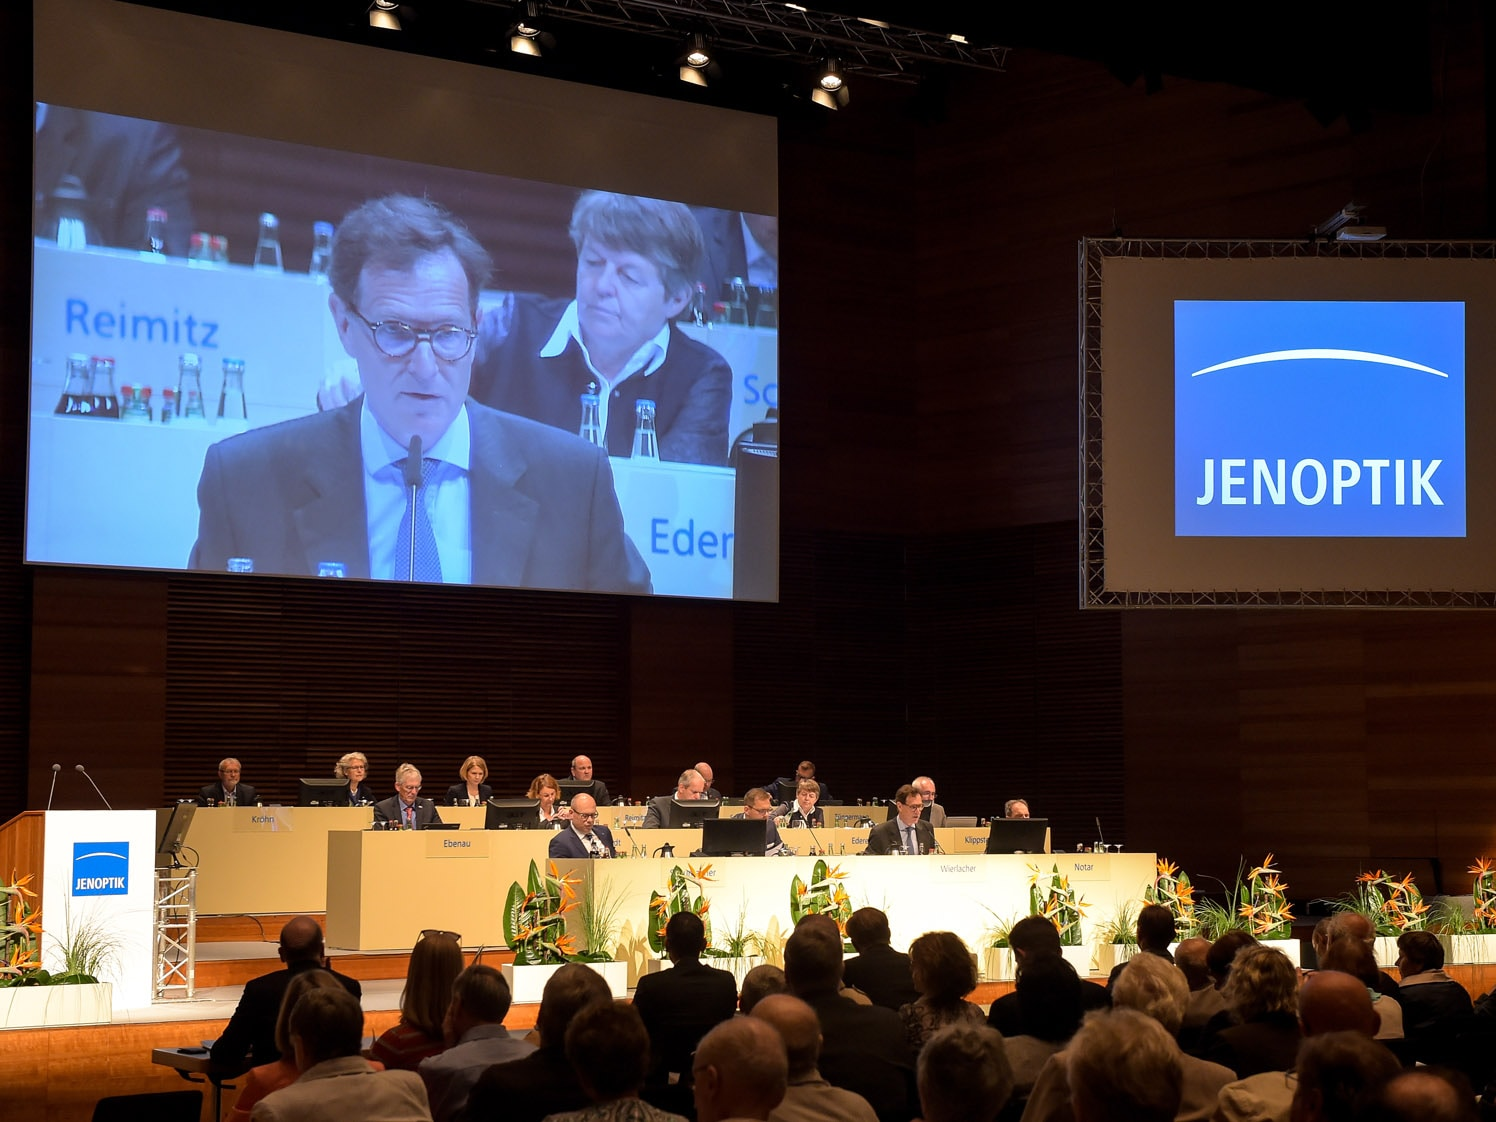 Annual General Meeting of JENOPTIK AG